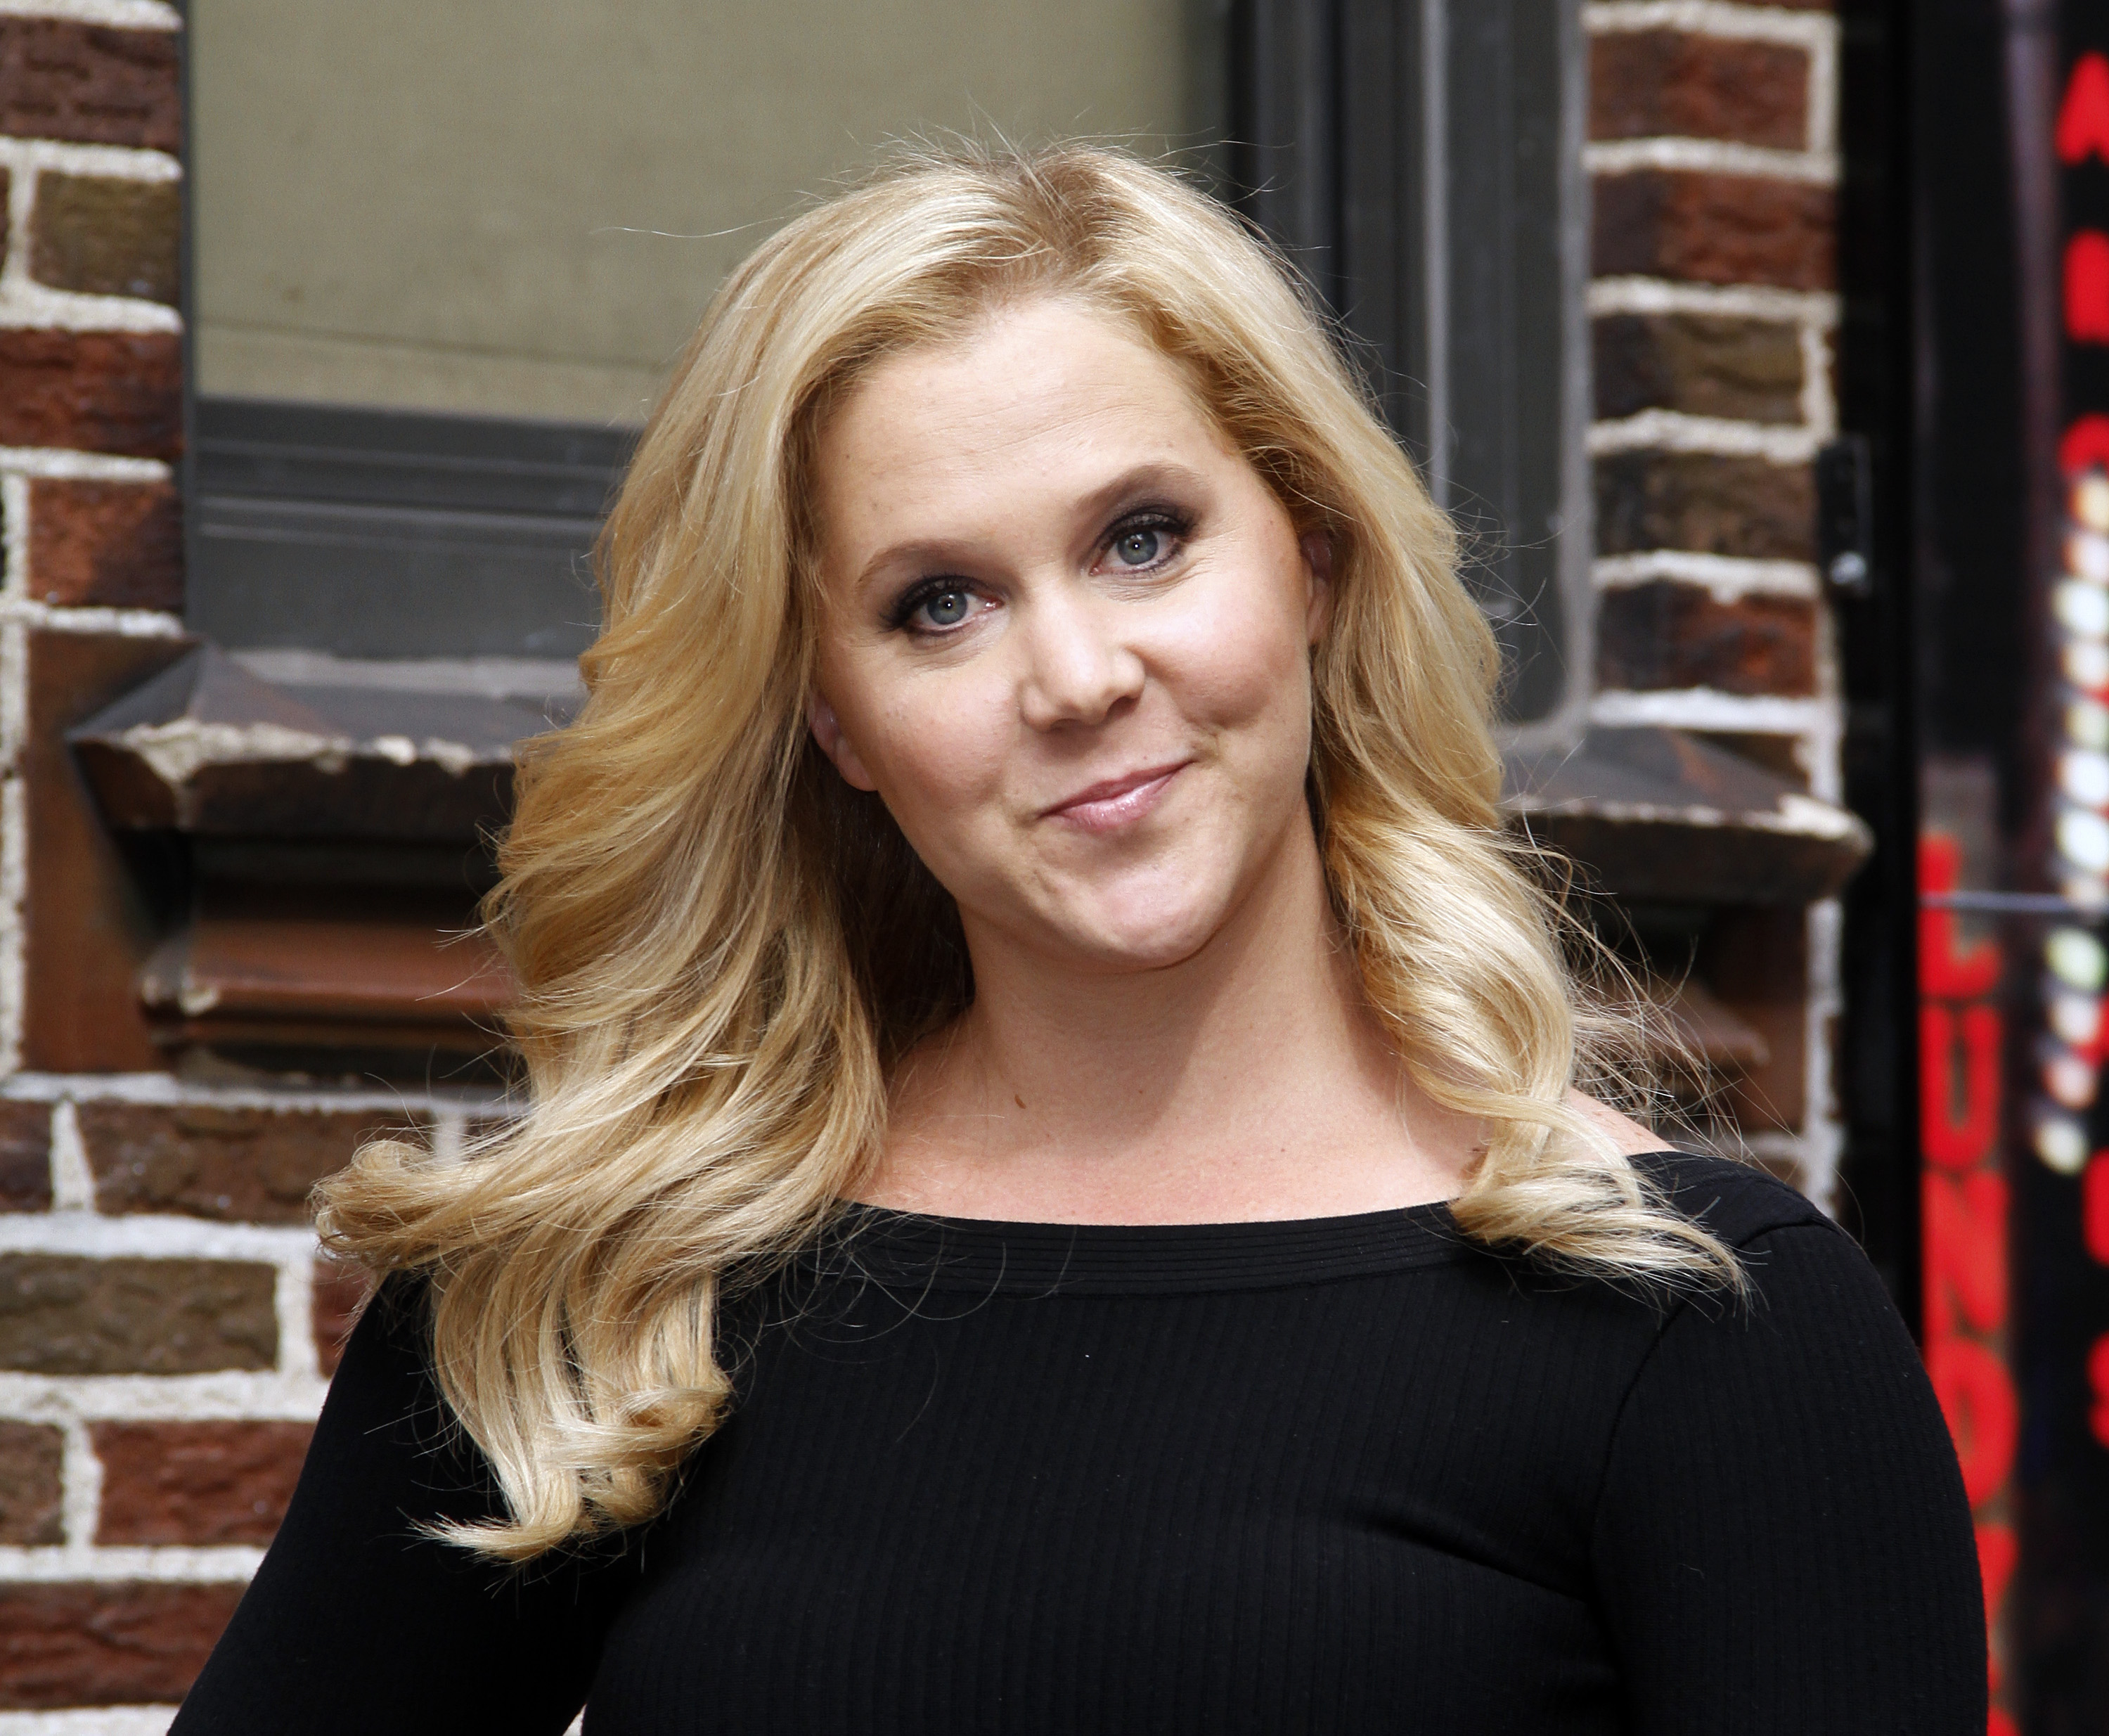 Amy Schumer arrives for the  Late Show with David Letterman  at Ed Sullivan Theater on April 1, 2014 in New York City.